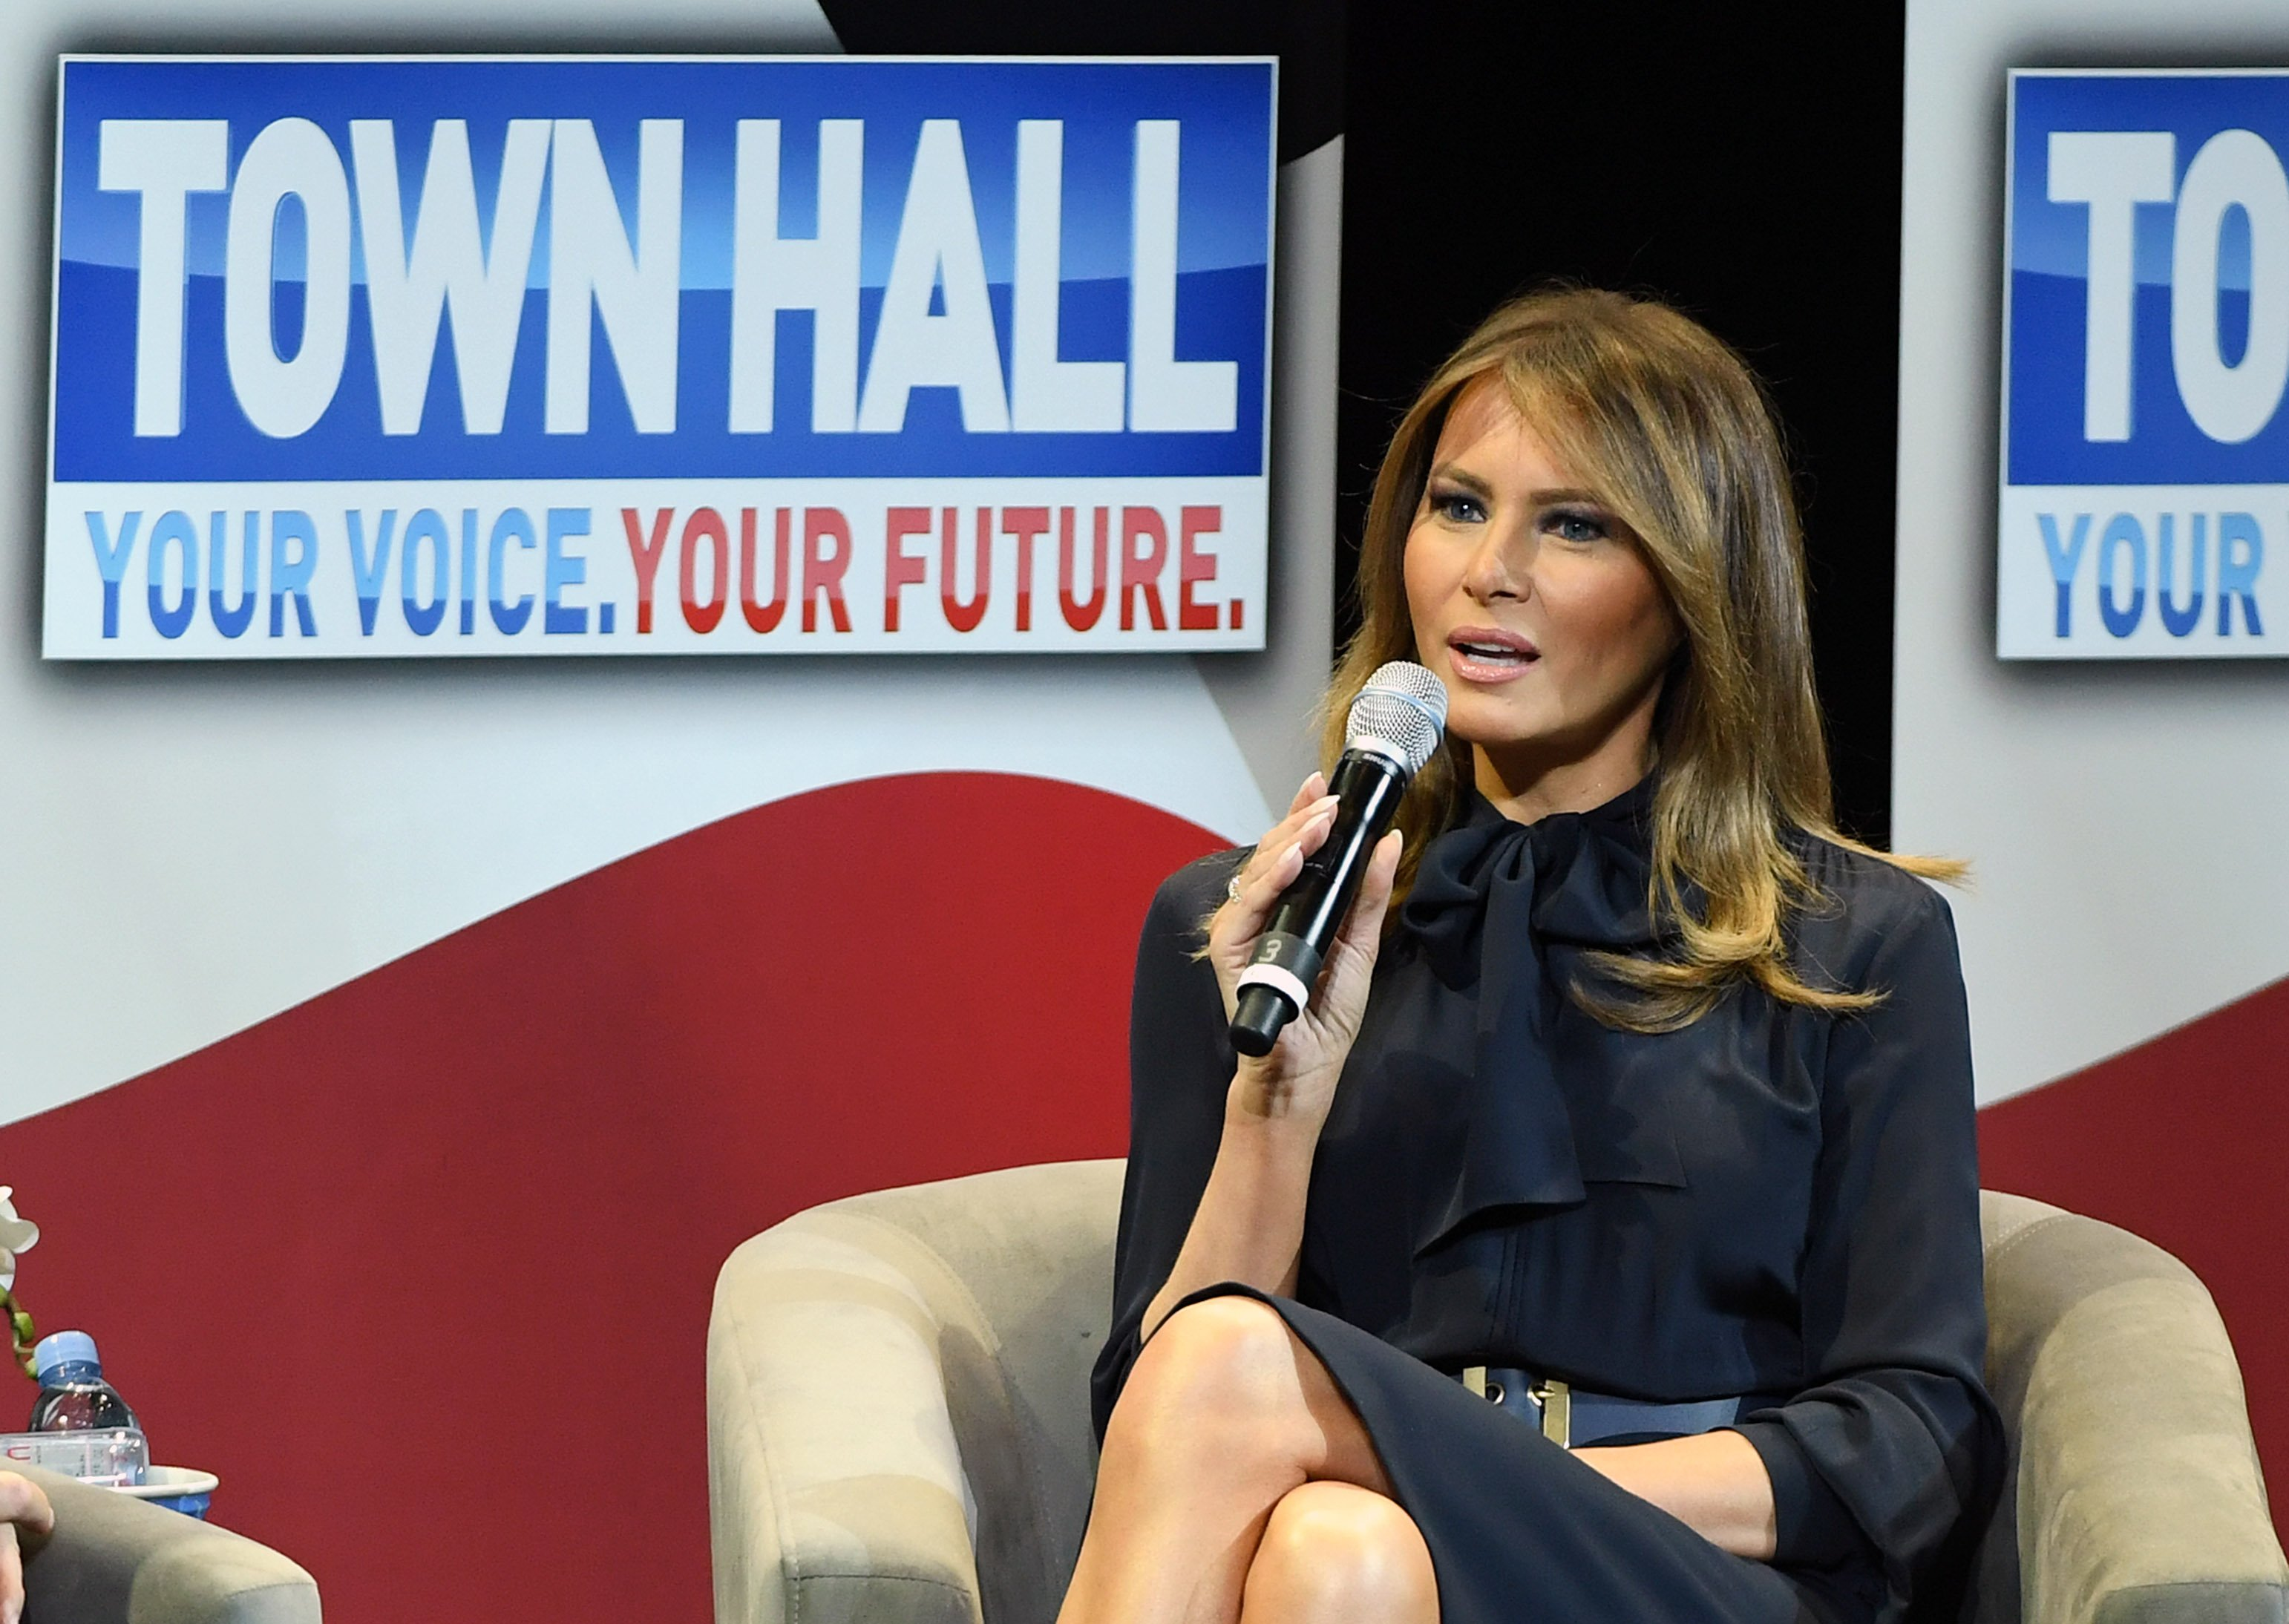 Melania Trump at a town hall in Las Vegas for her Be Best tour on February 5, 2019 | Photo: Getty Images